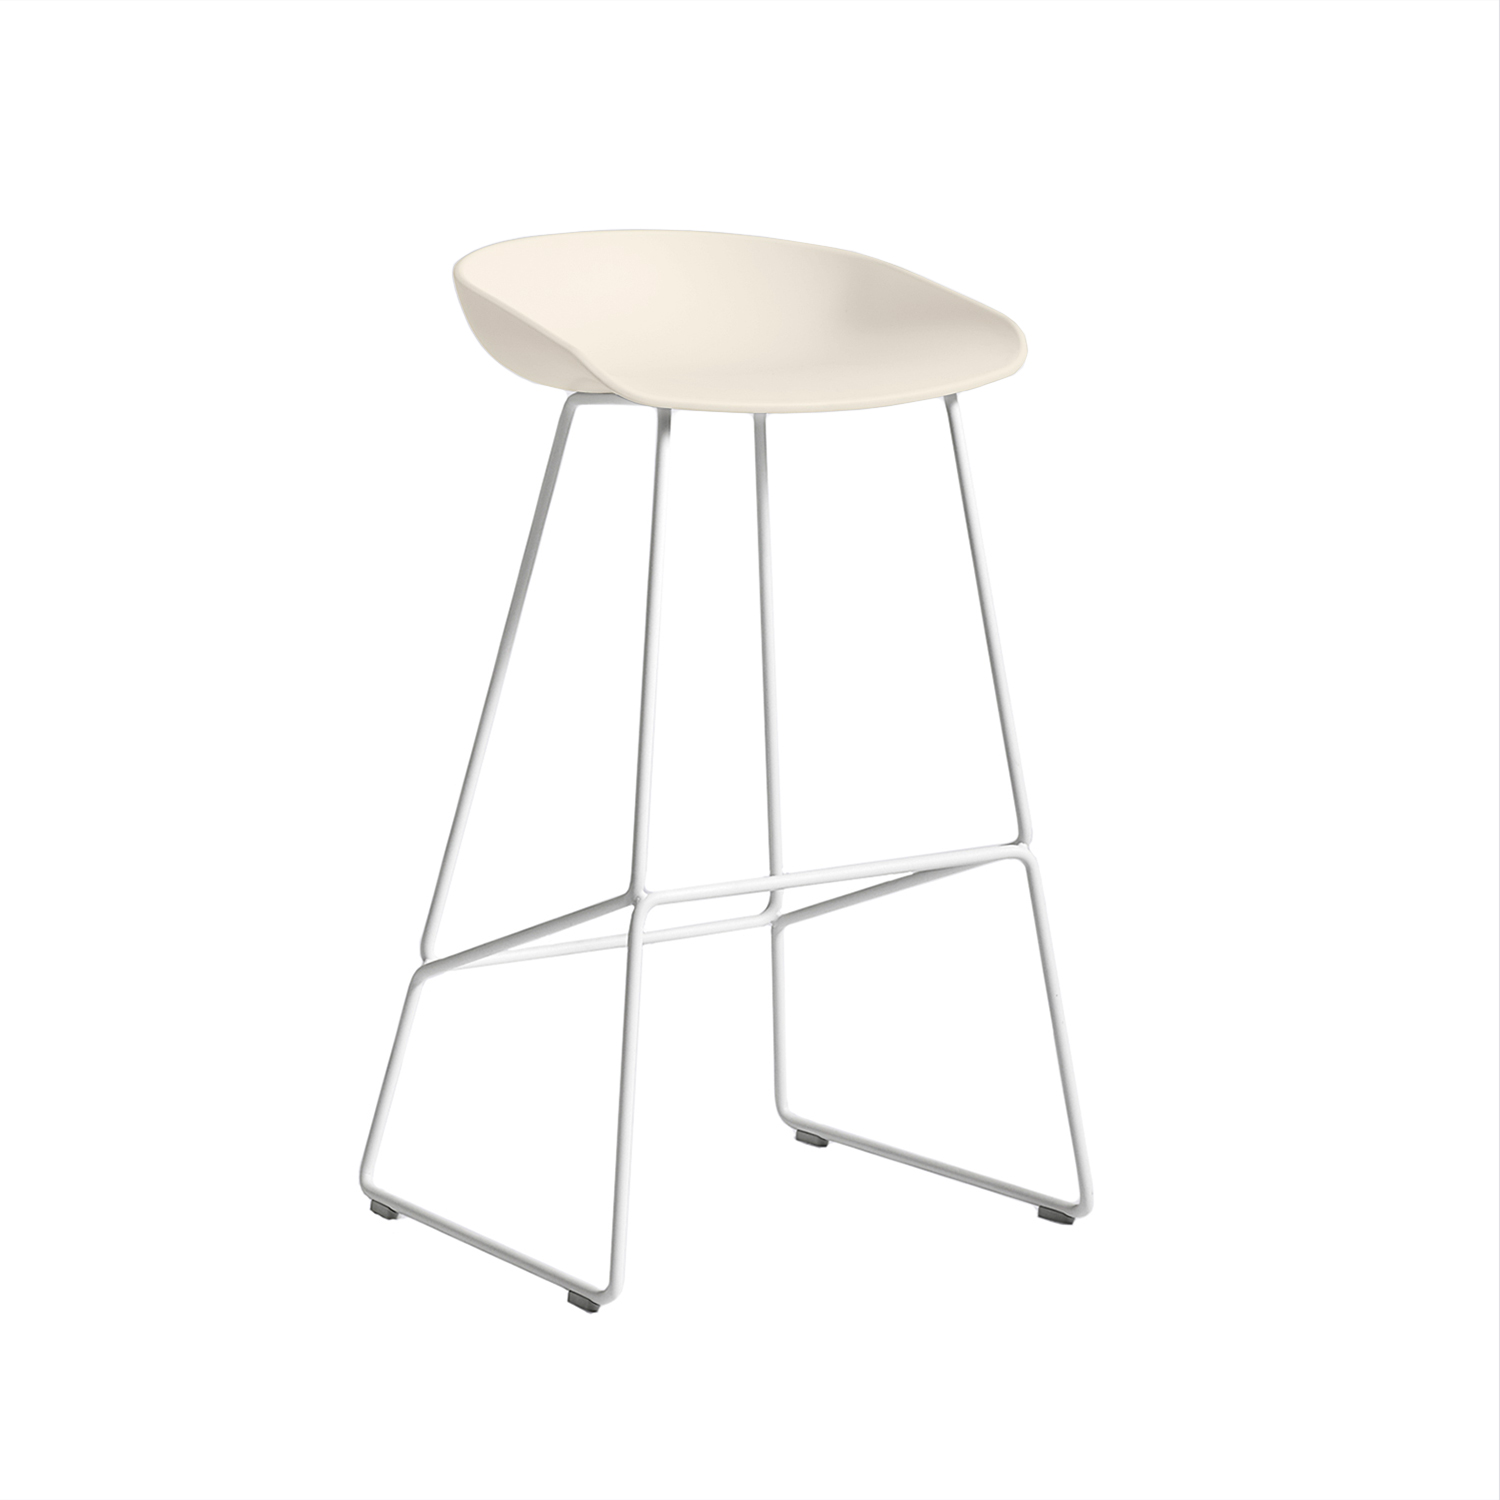 About a Stool 38 barstol h75, cream white/vit